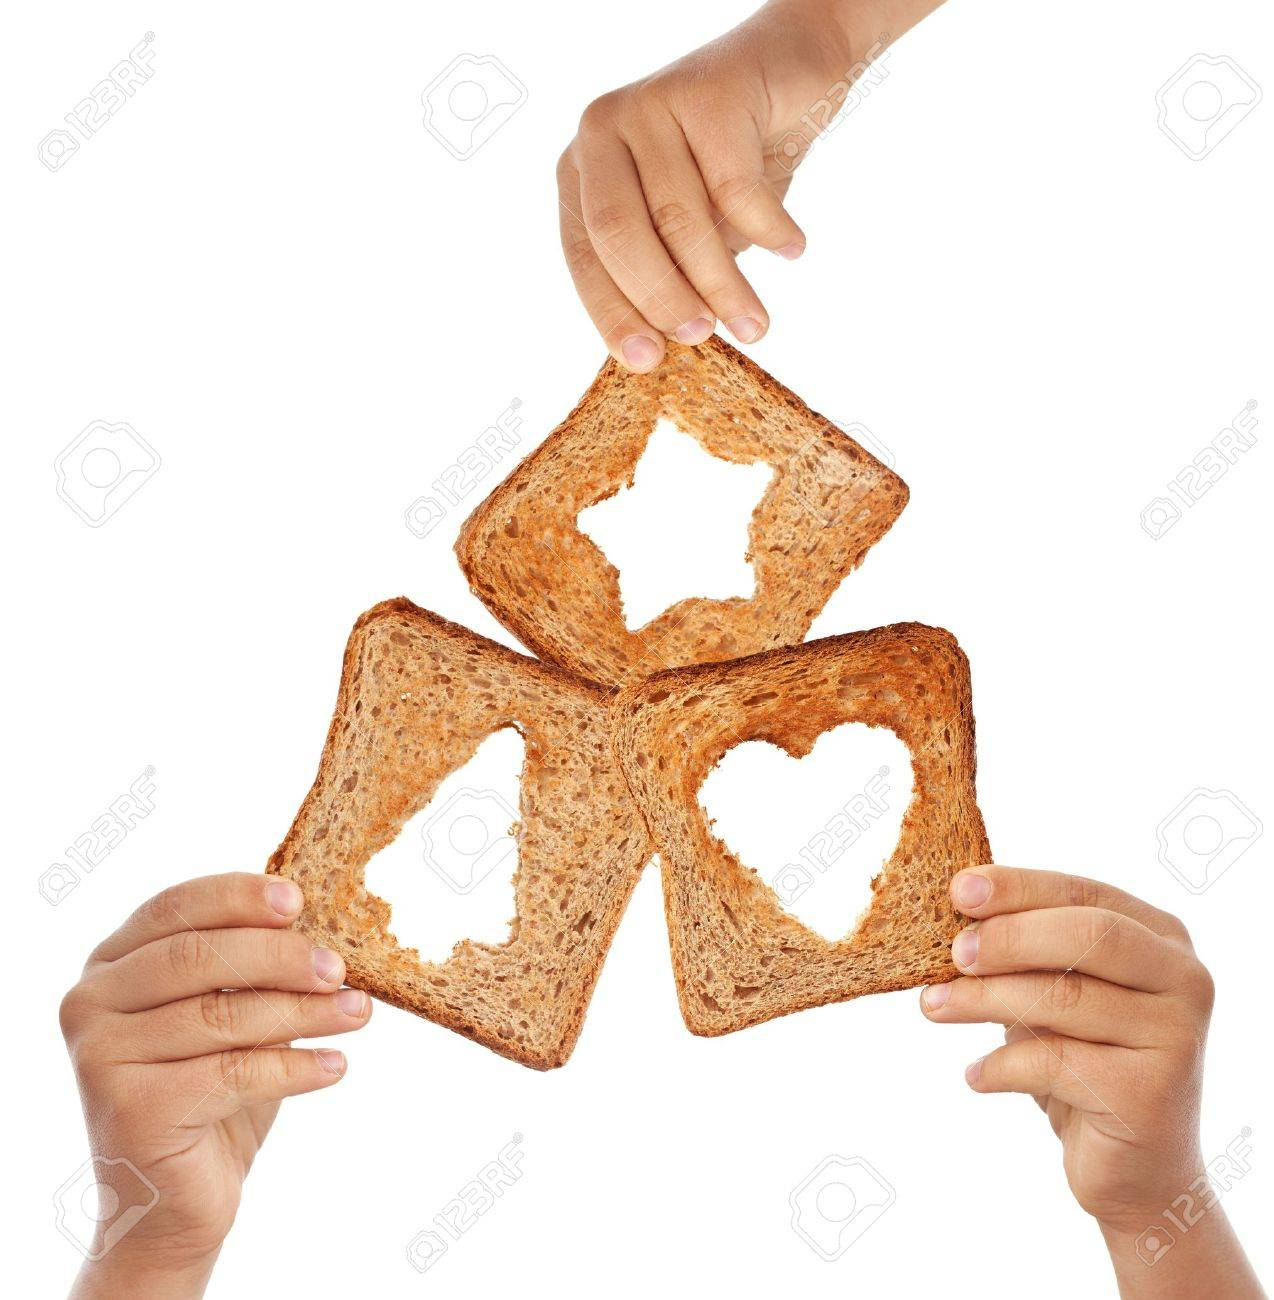 Kids hands holding bread with christmas symbols - love and sharing concept Stock Photo - 11105946